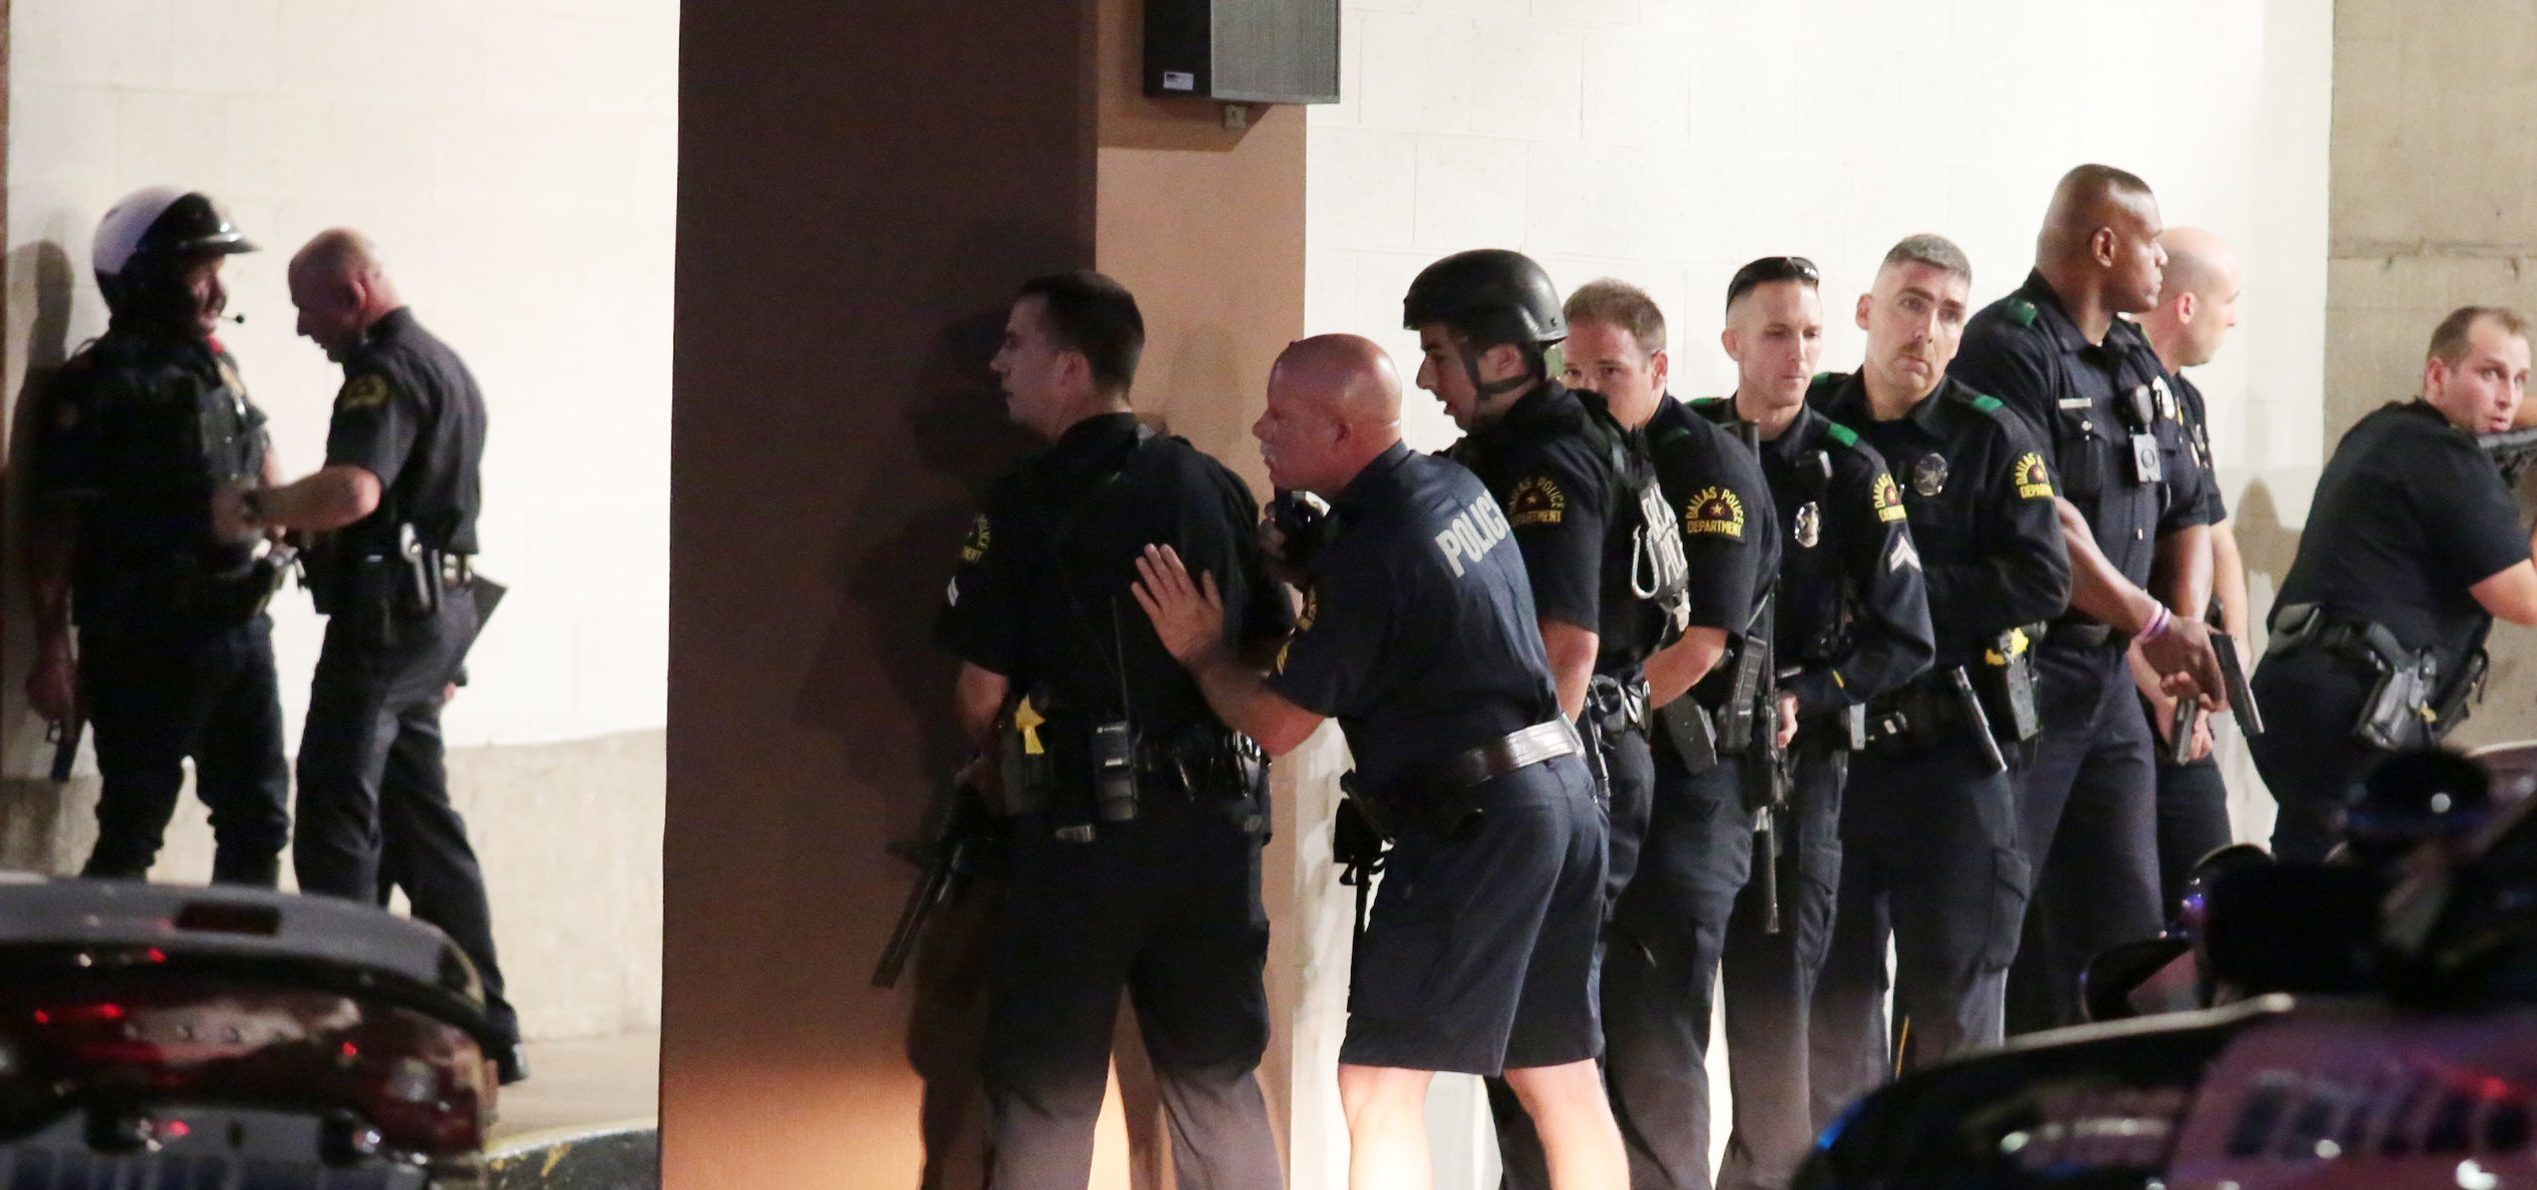 Police take cover after shots were fired.